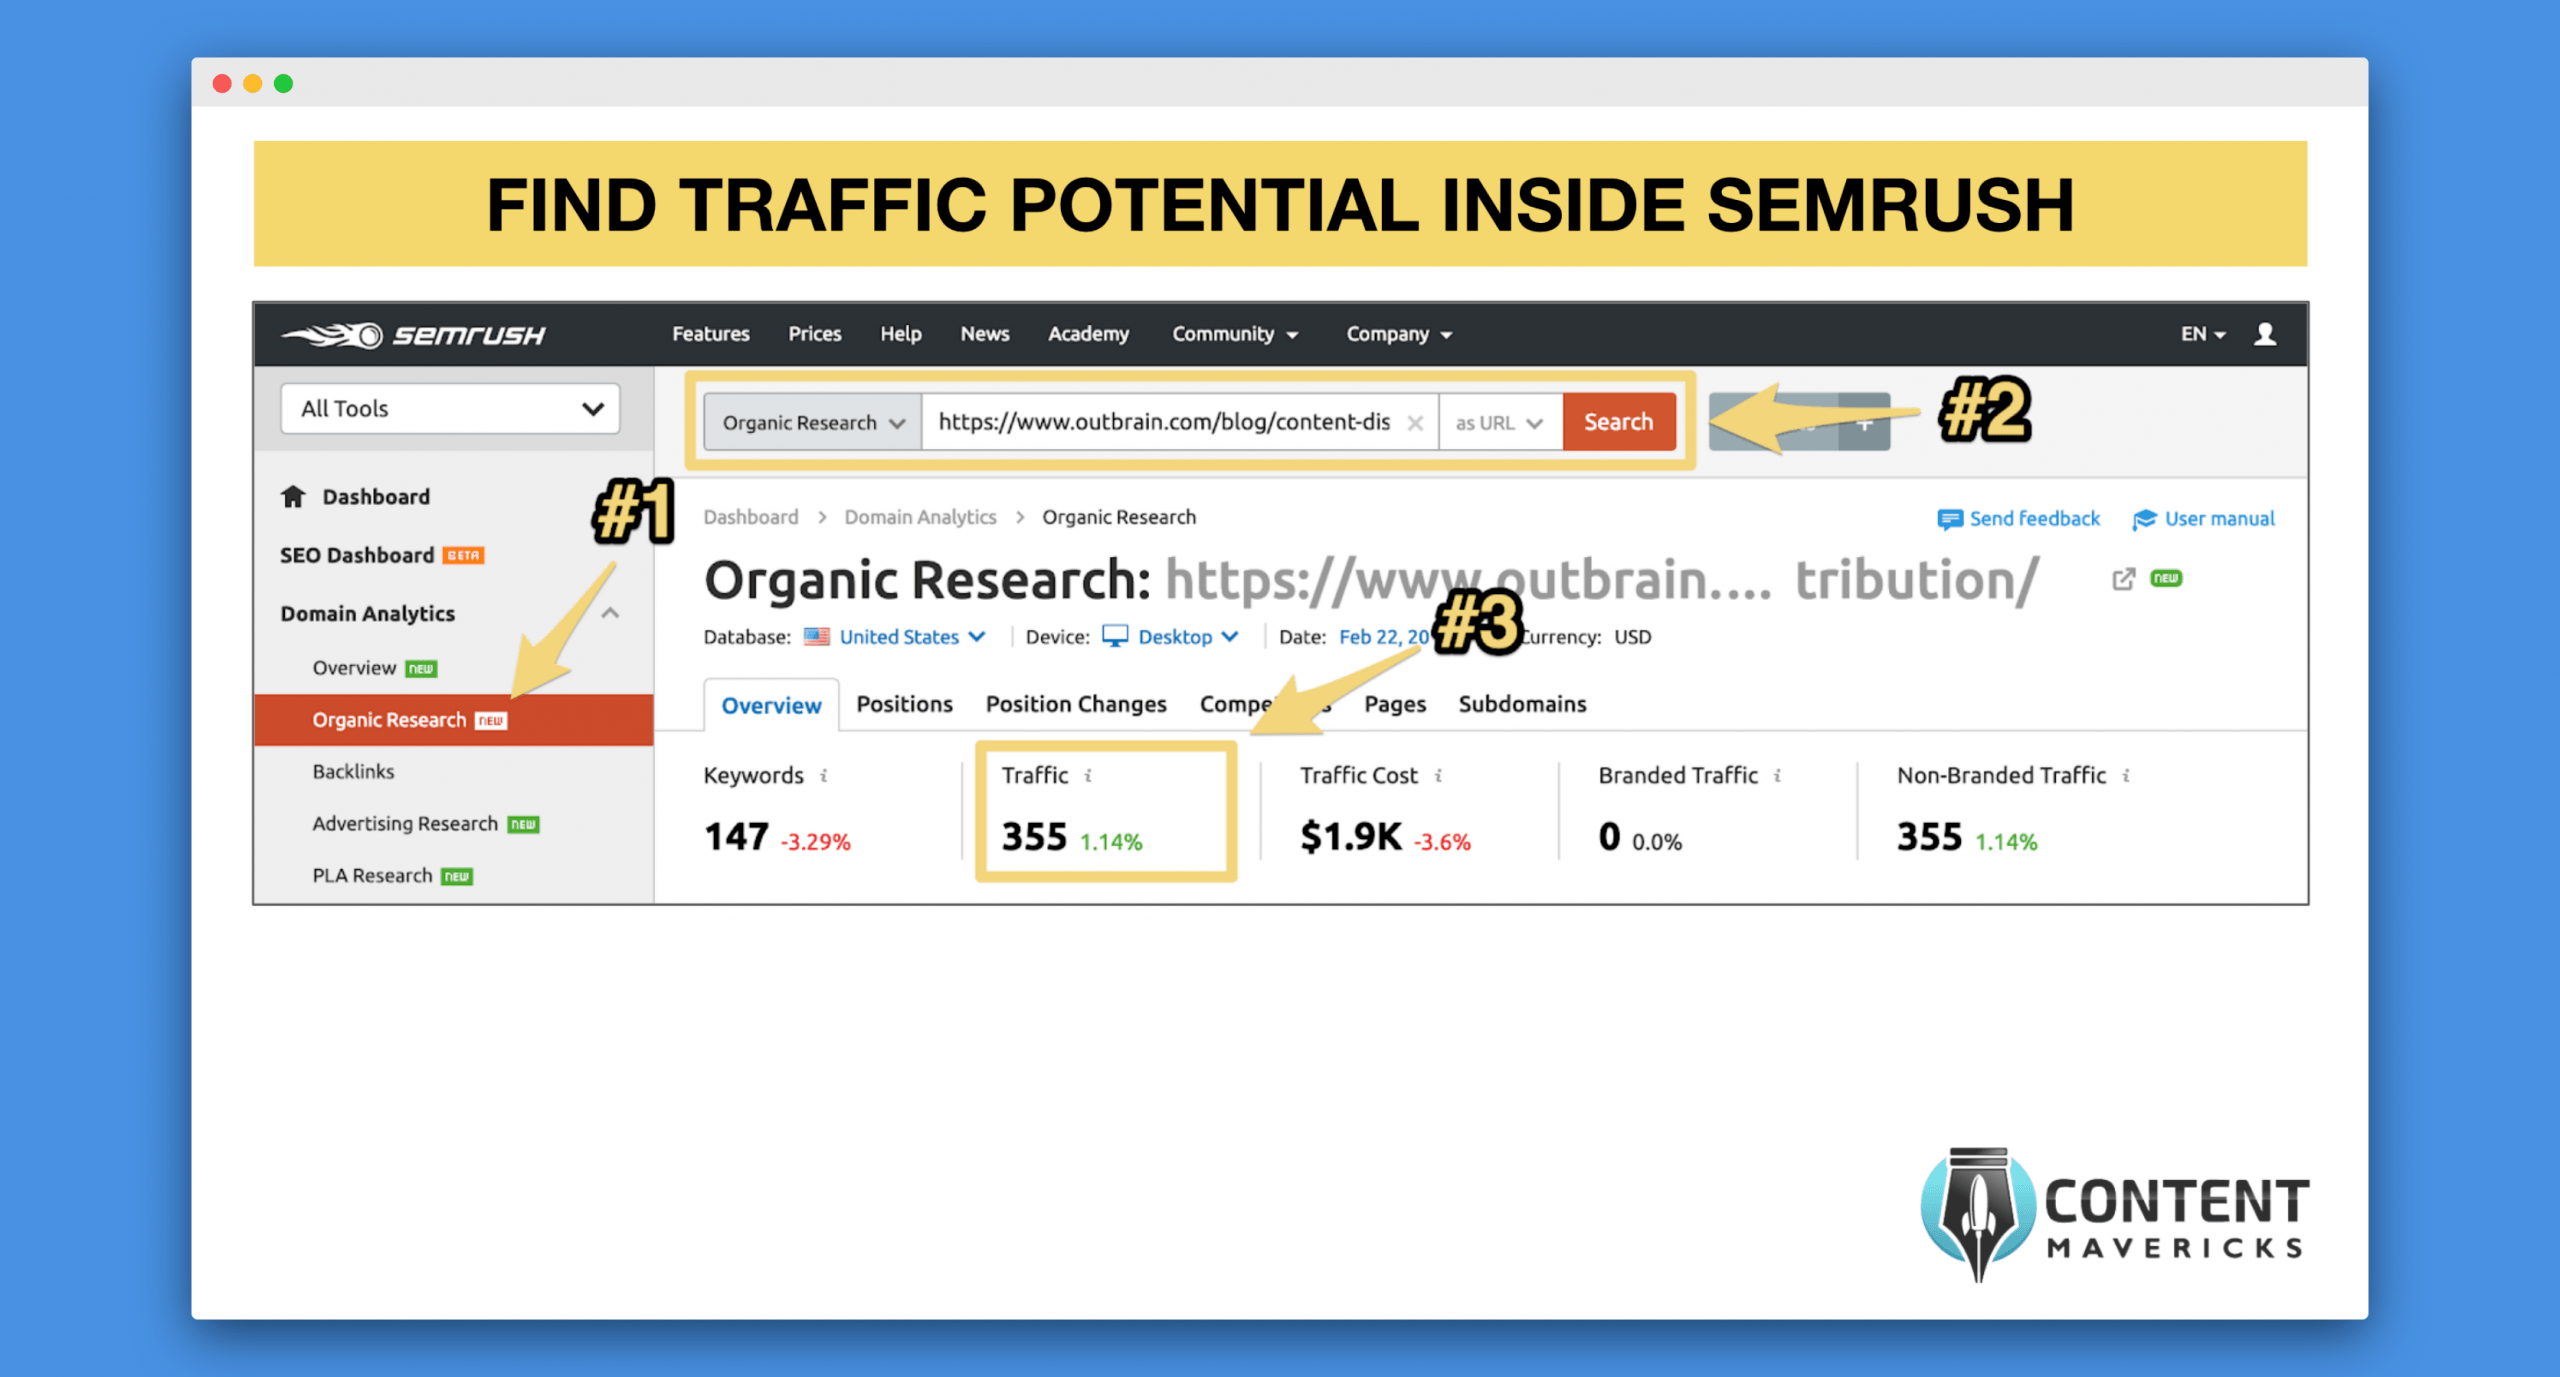 semrush traffic potential scaled image